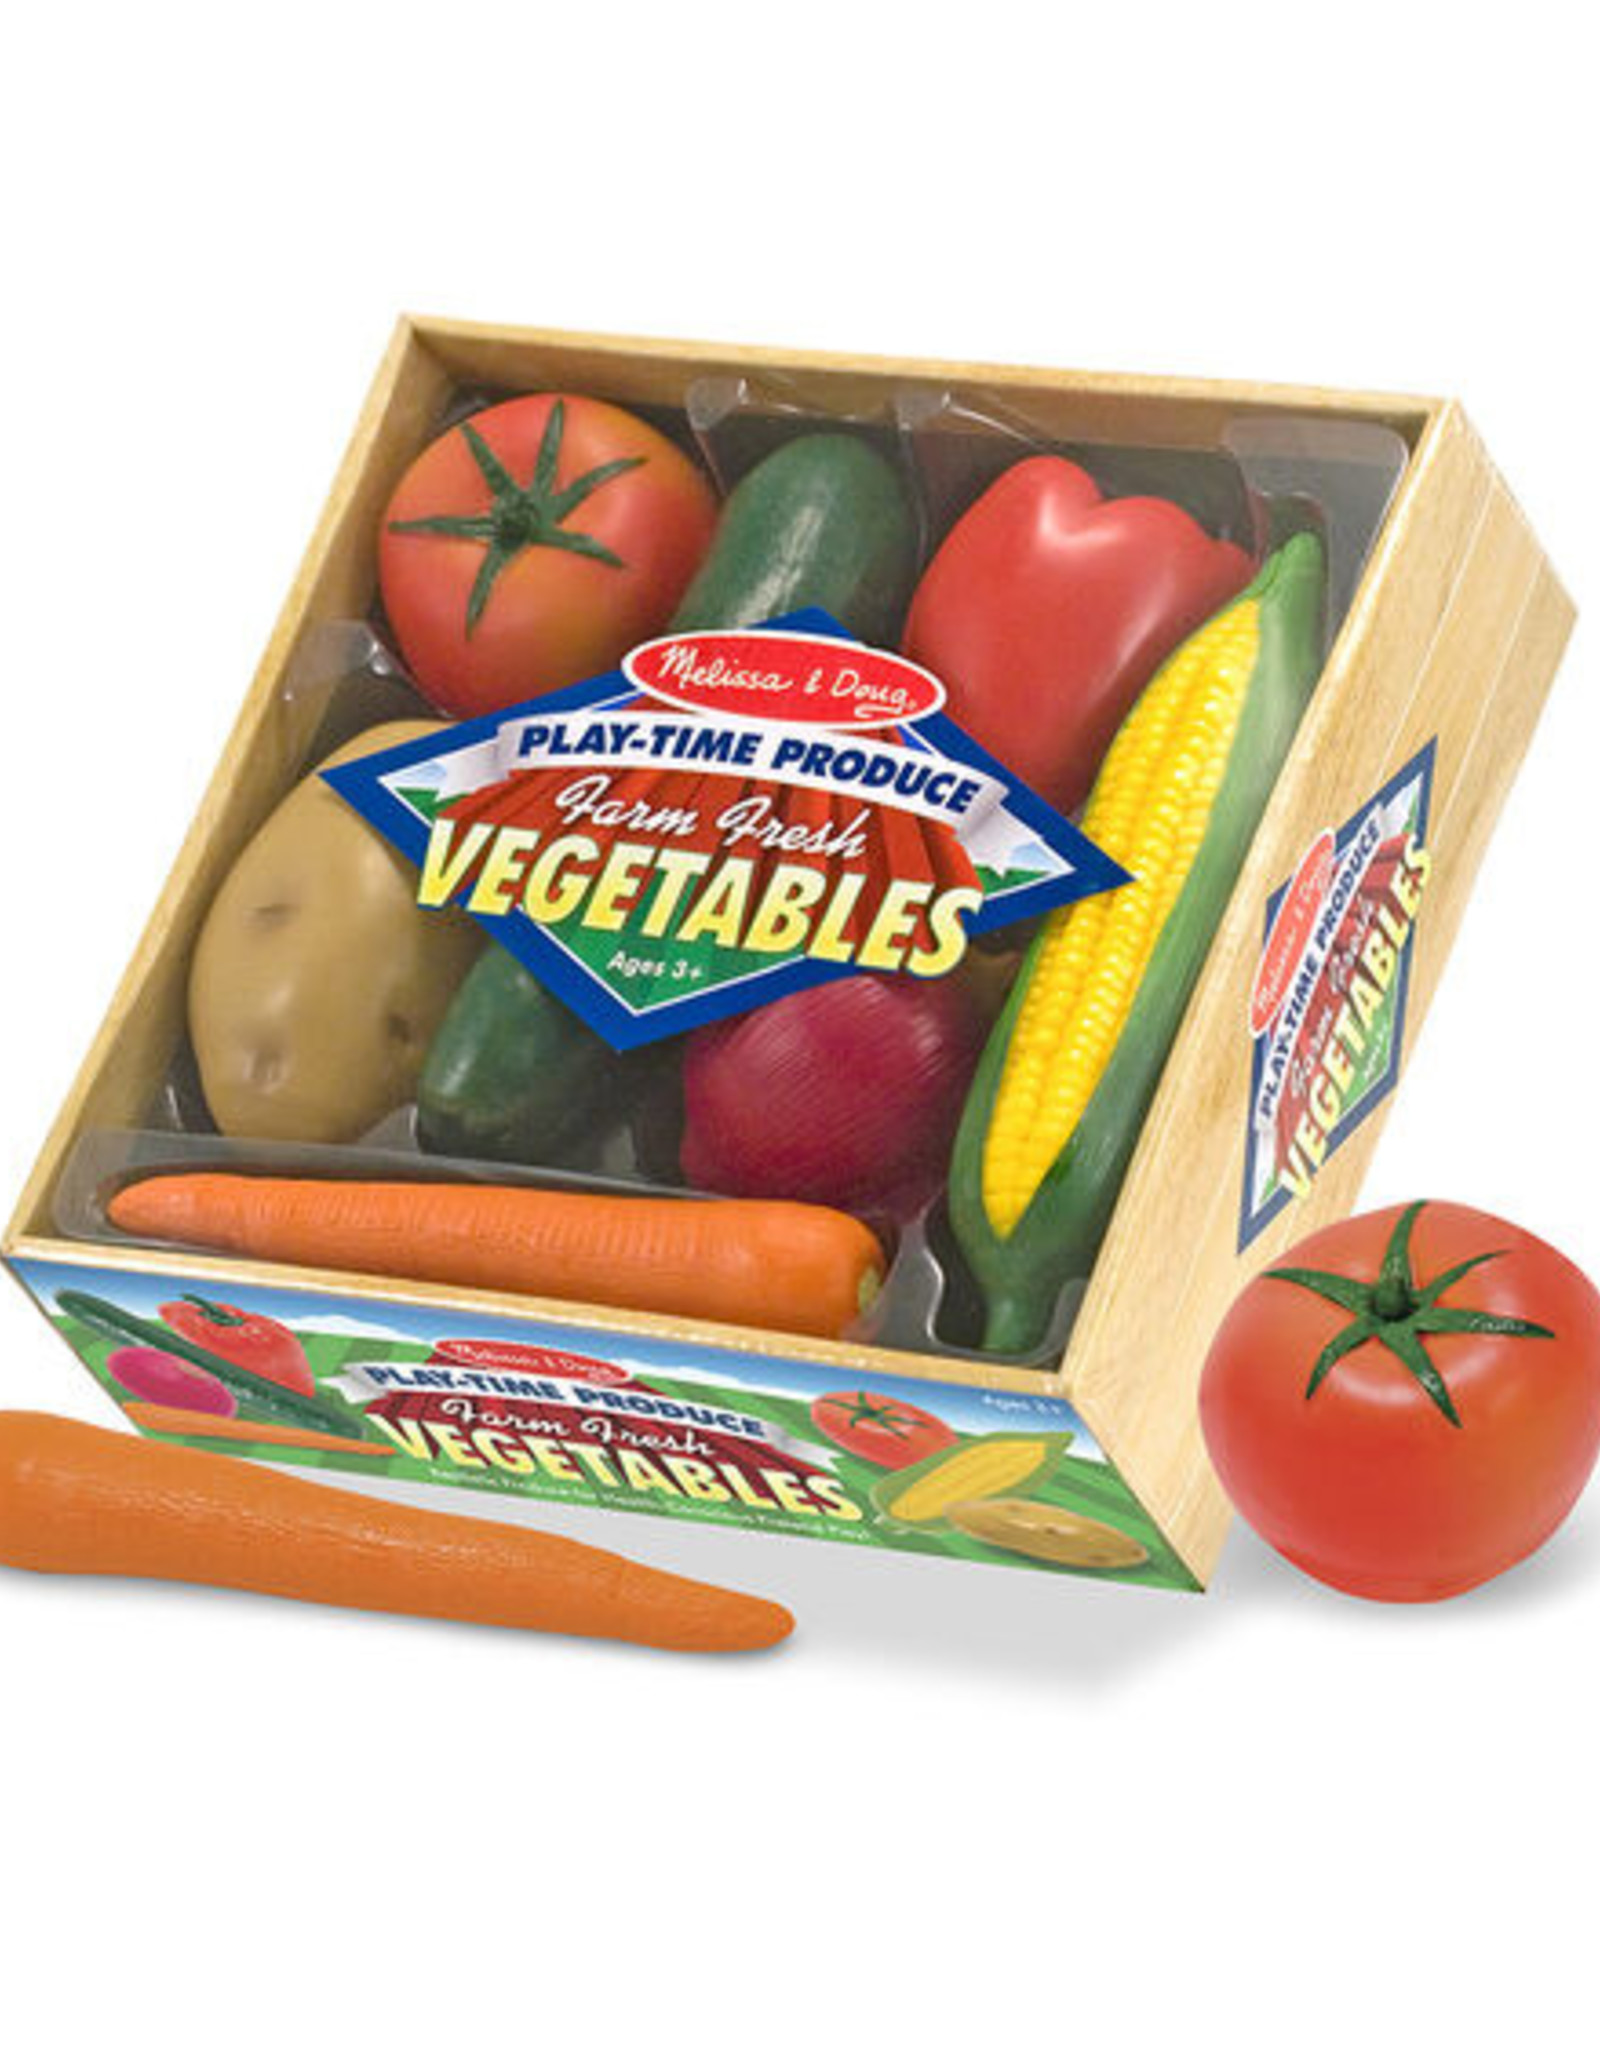 Melissa & Doug Play-Time Produce Vegetables